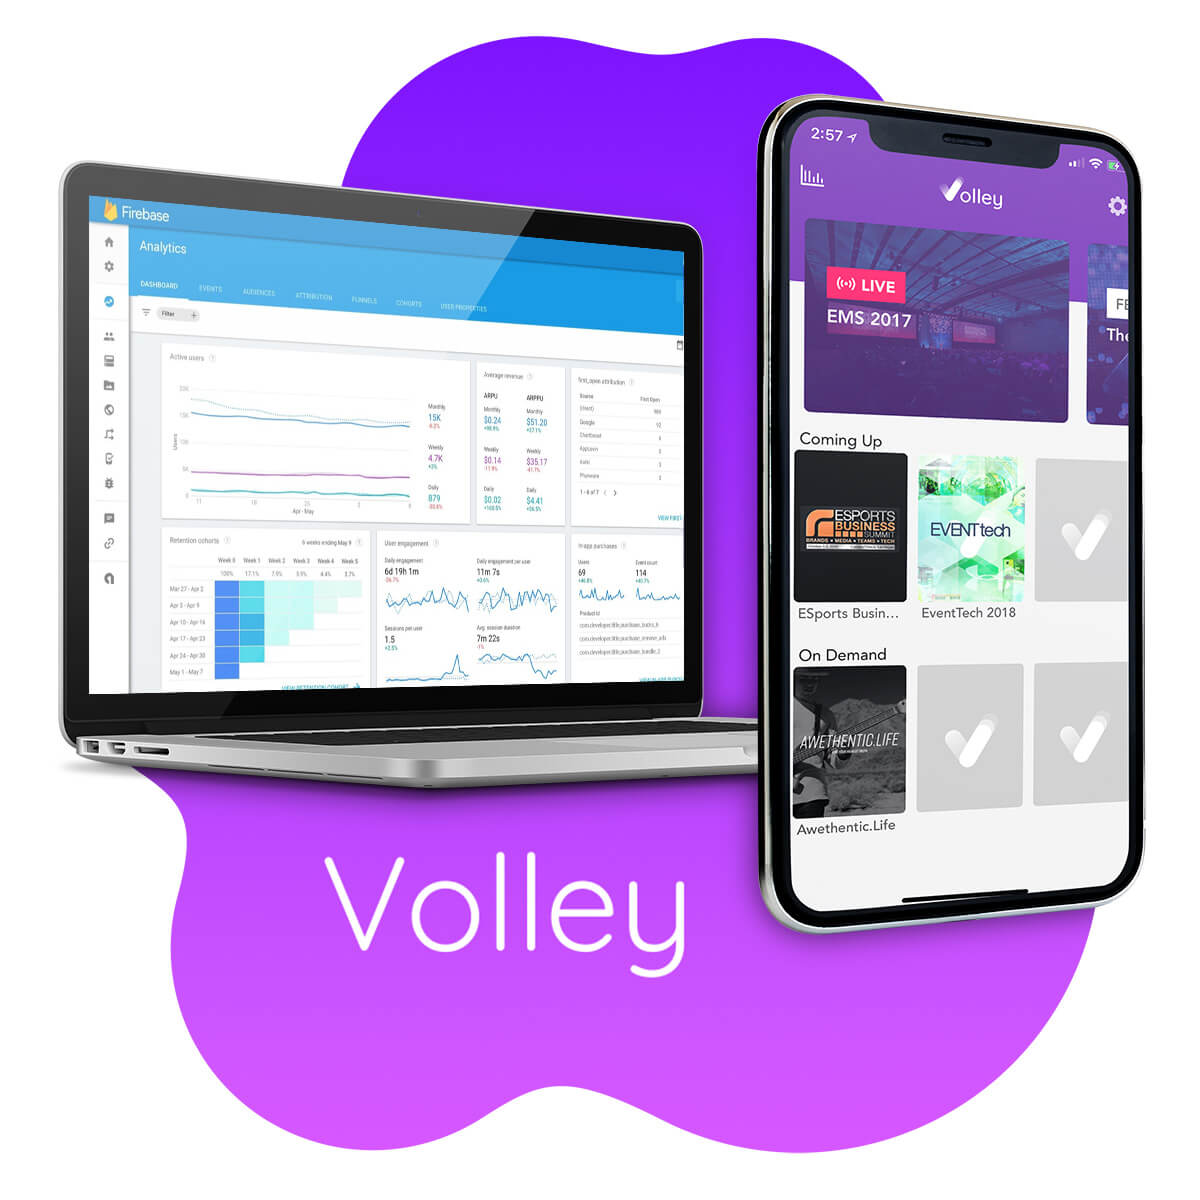 A mockup of the Volley app, which lets you capture, edit, curate, and distribute custom moments from live events.